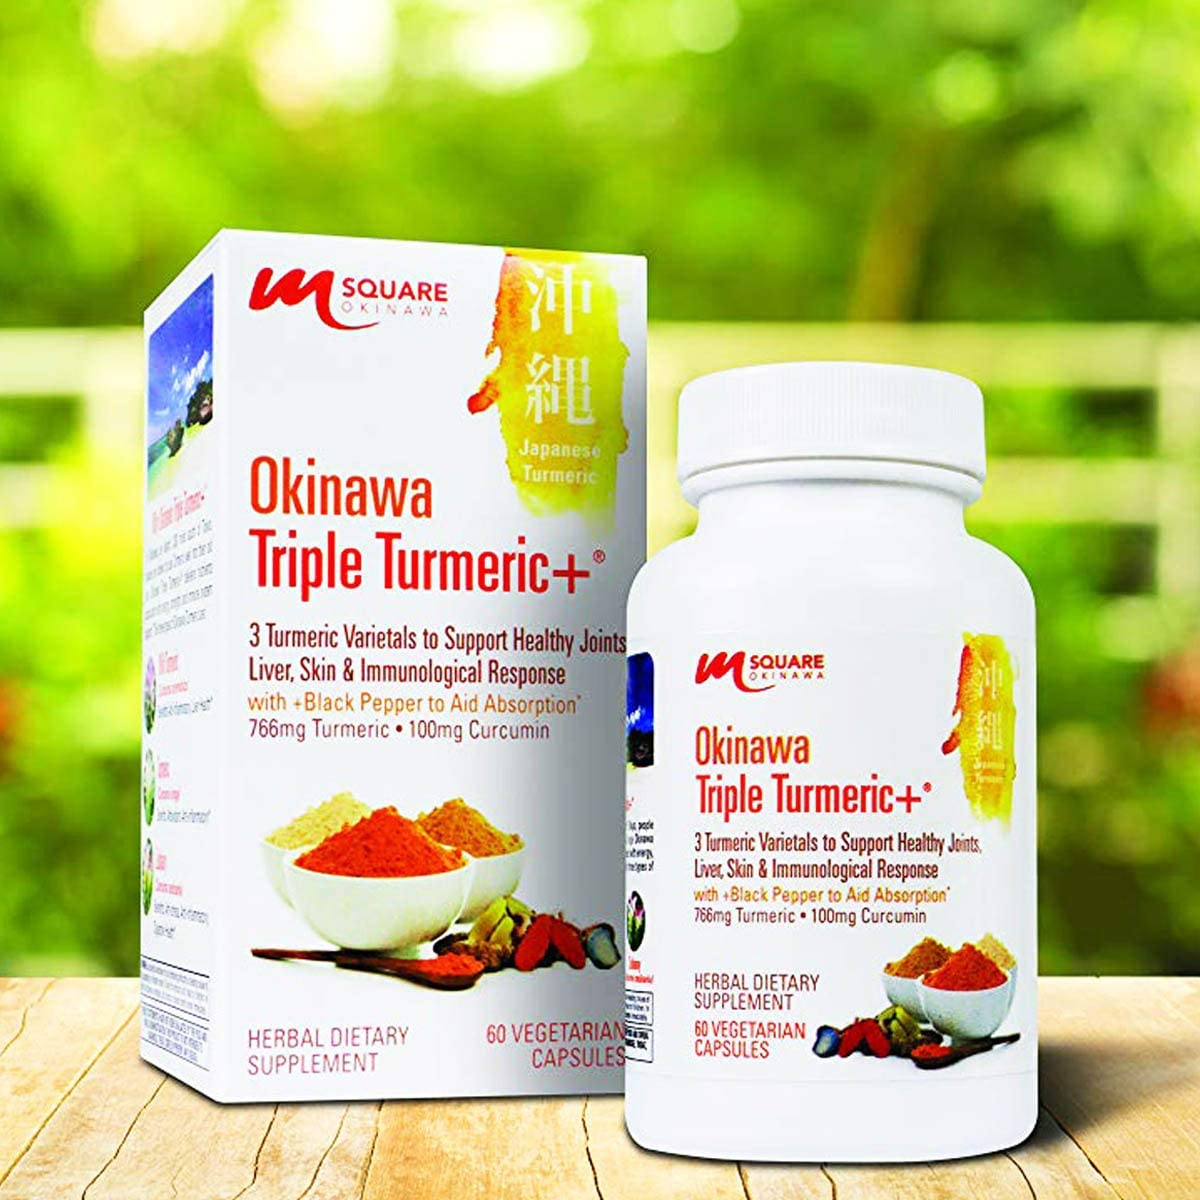 Okinawa Triple Turmeric 3 Turmeric Varietals with Black Pepper to Aid Absorption. 120 Vegetarian Capsules. 2 Bottles